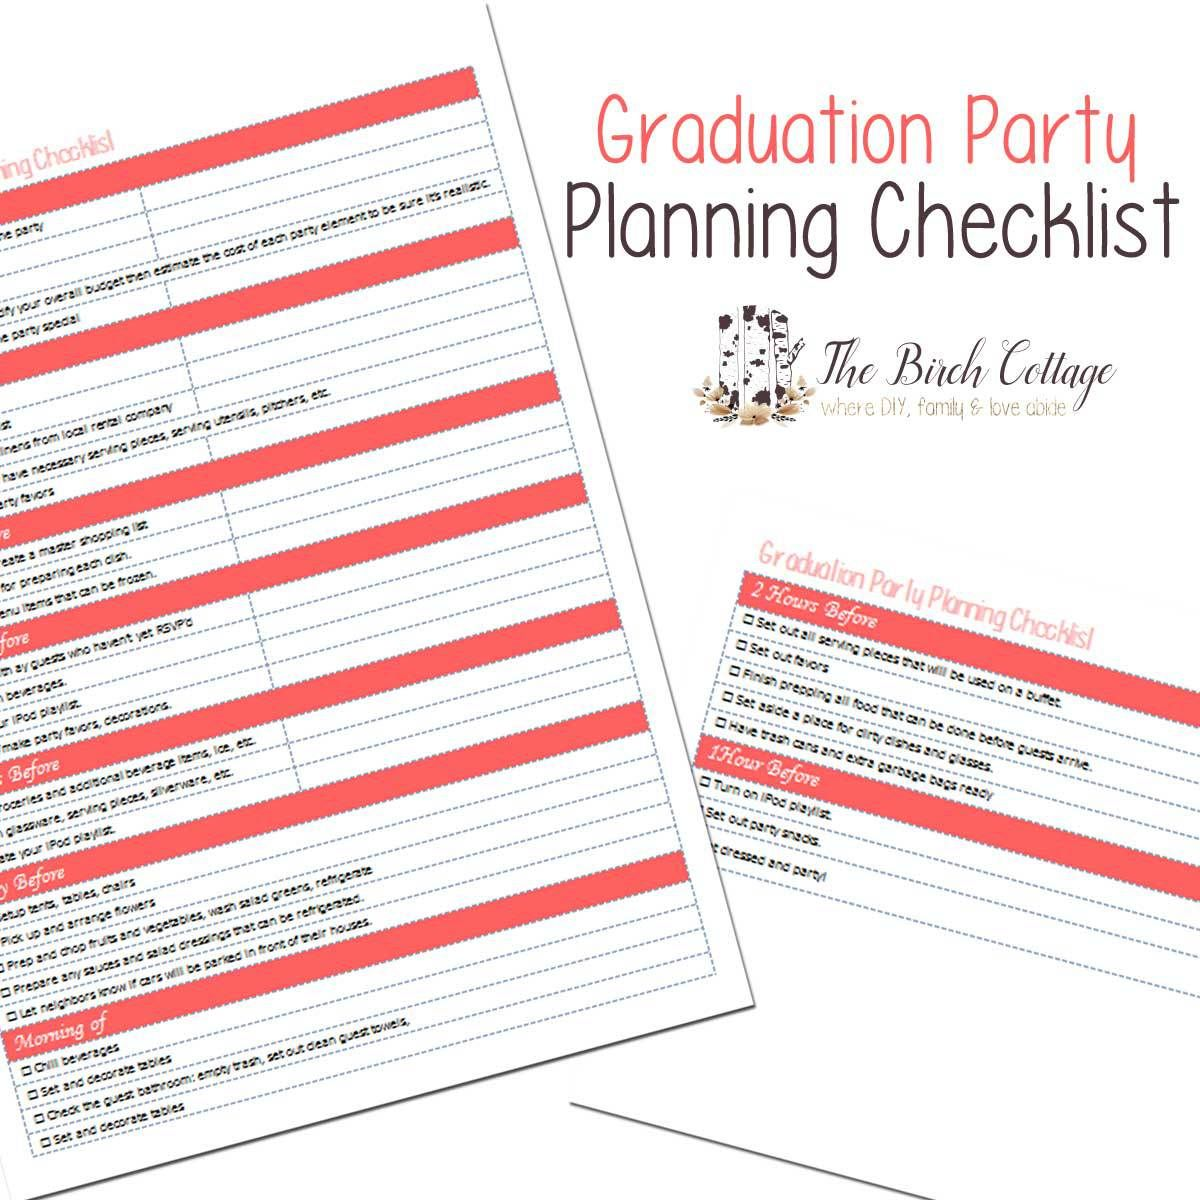 7 tips for a less stressful graduation party and a free planner